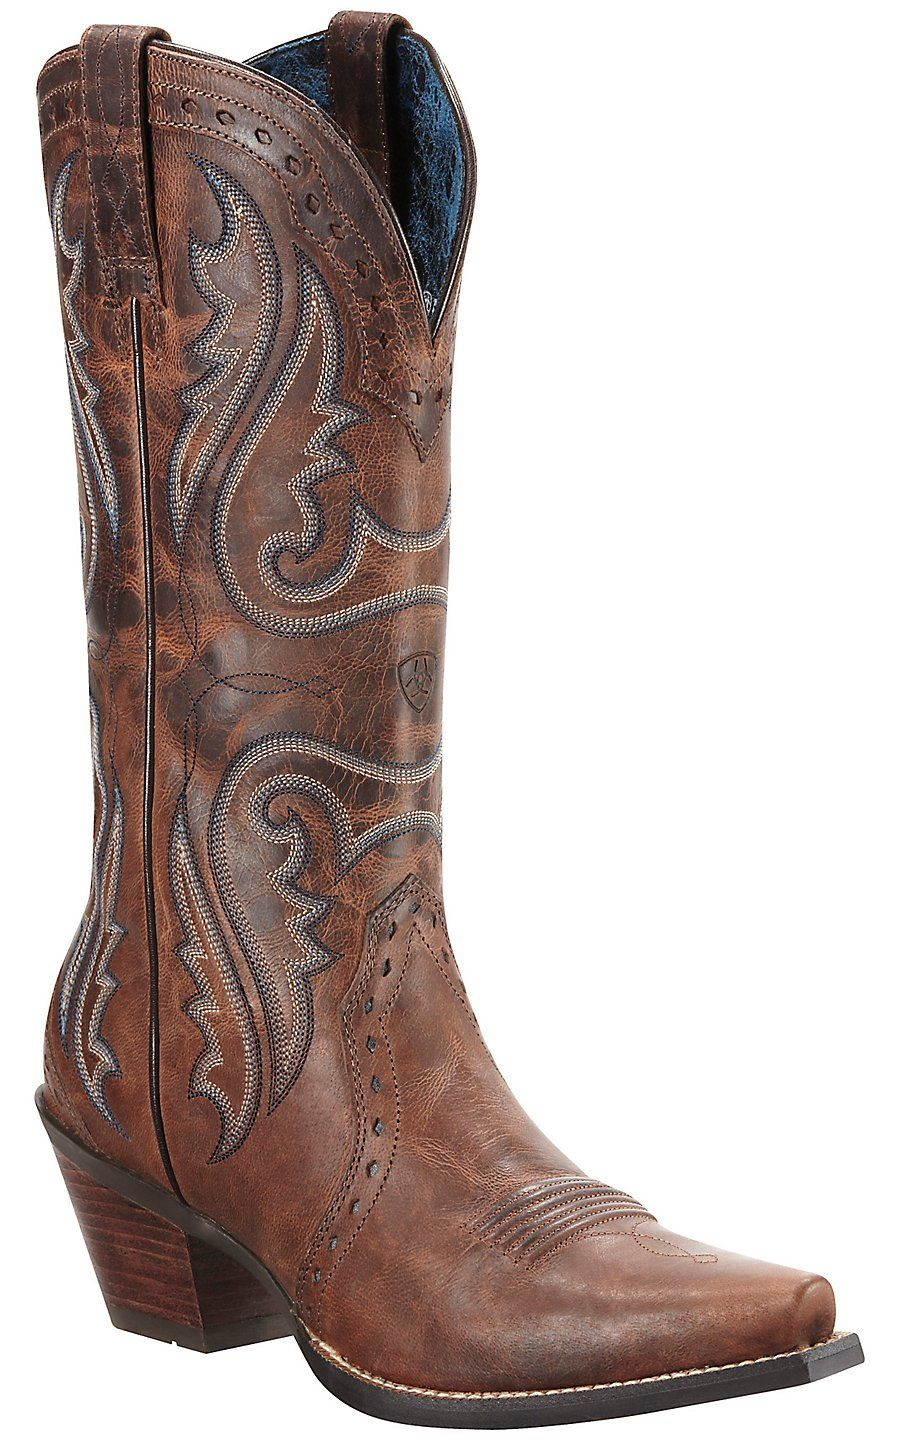 This is a great cowboy boot if you're looking for a classic brown ...